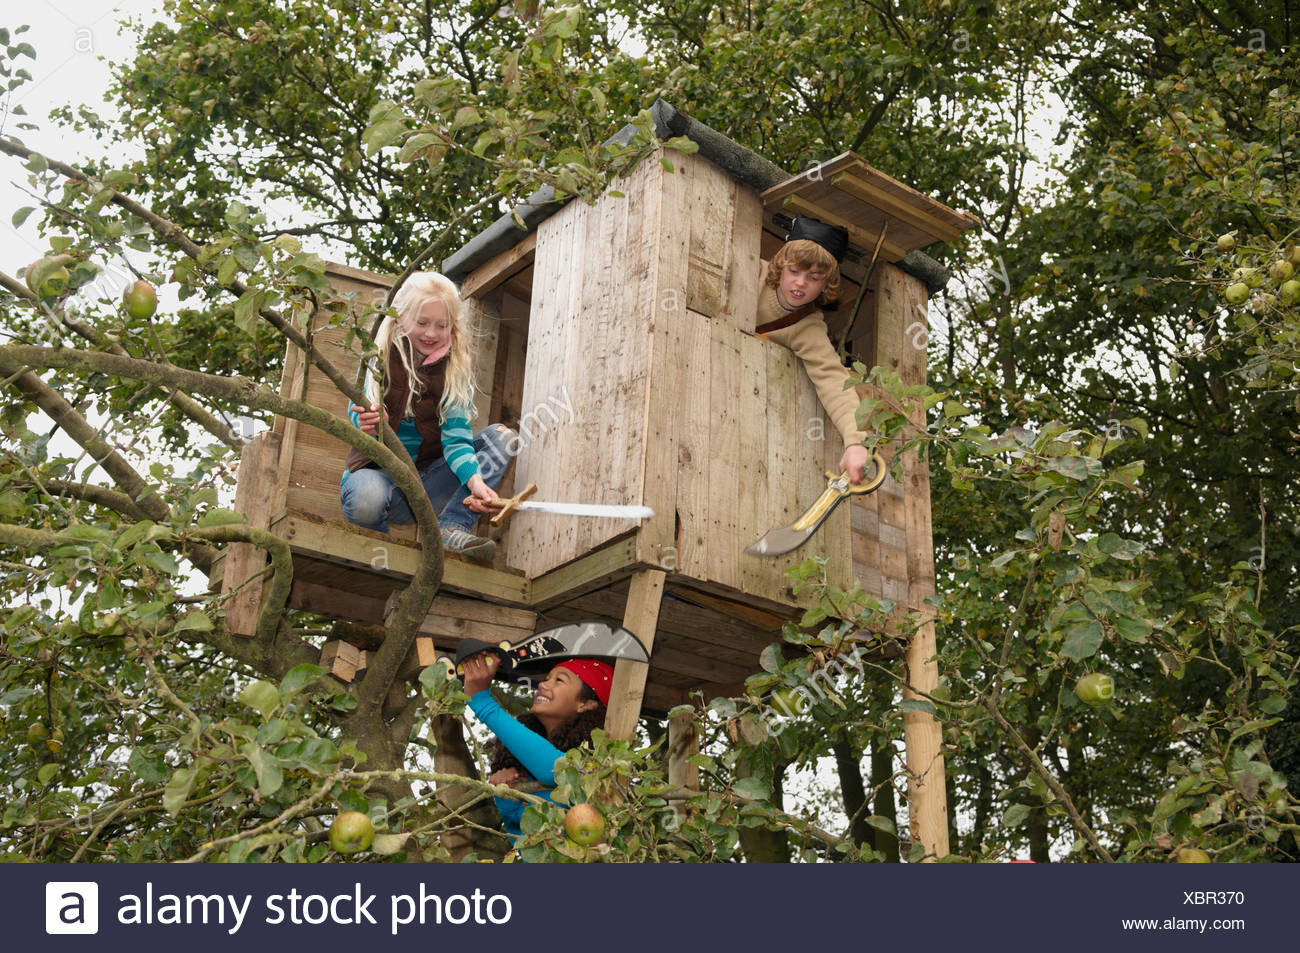 Children Playing In Treehouse Stock Photo Alamy